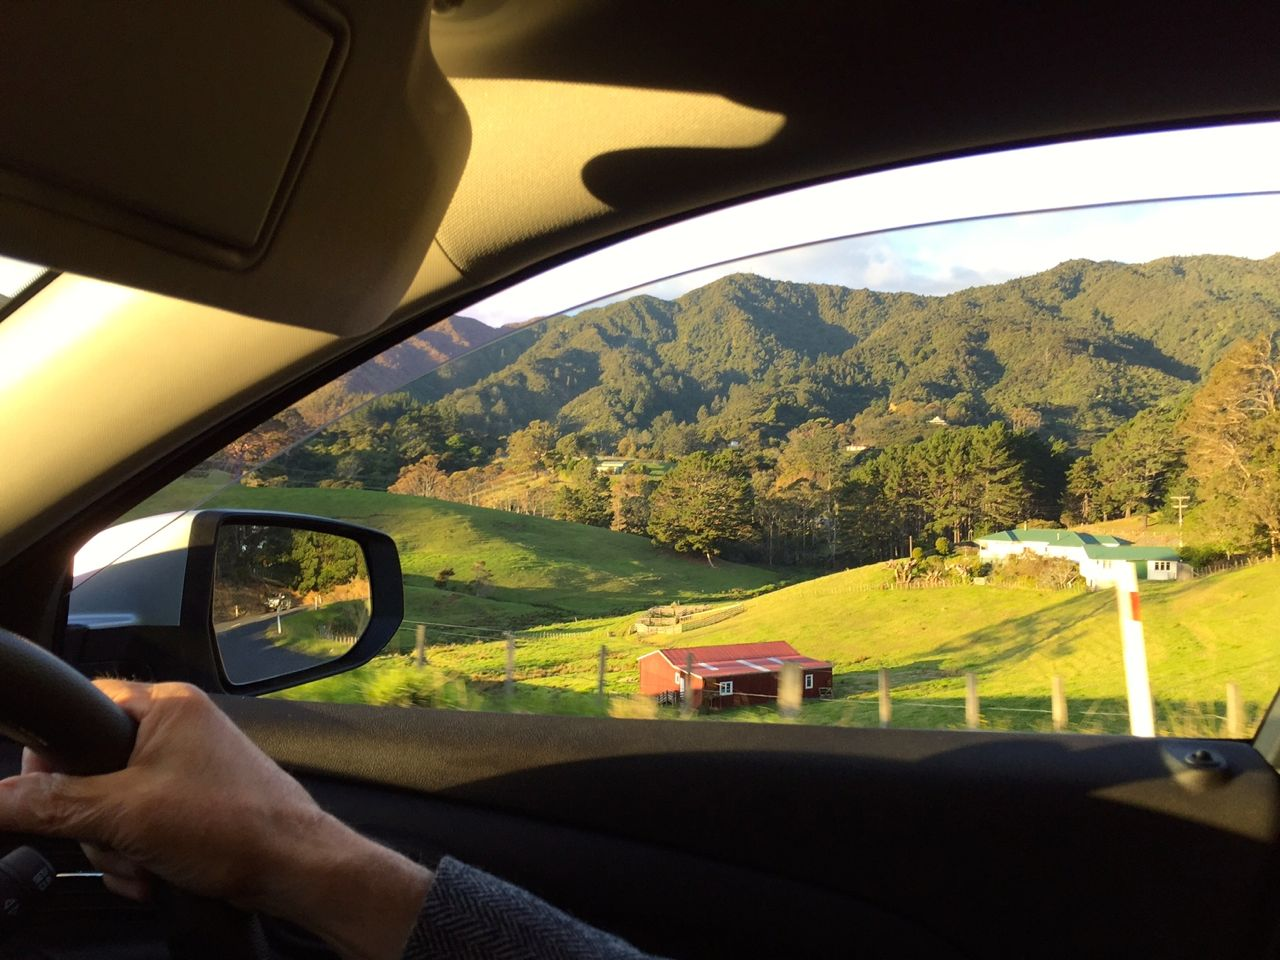 Sights on the route-of-hairpin-turns that took us through farmland to the beaches.